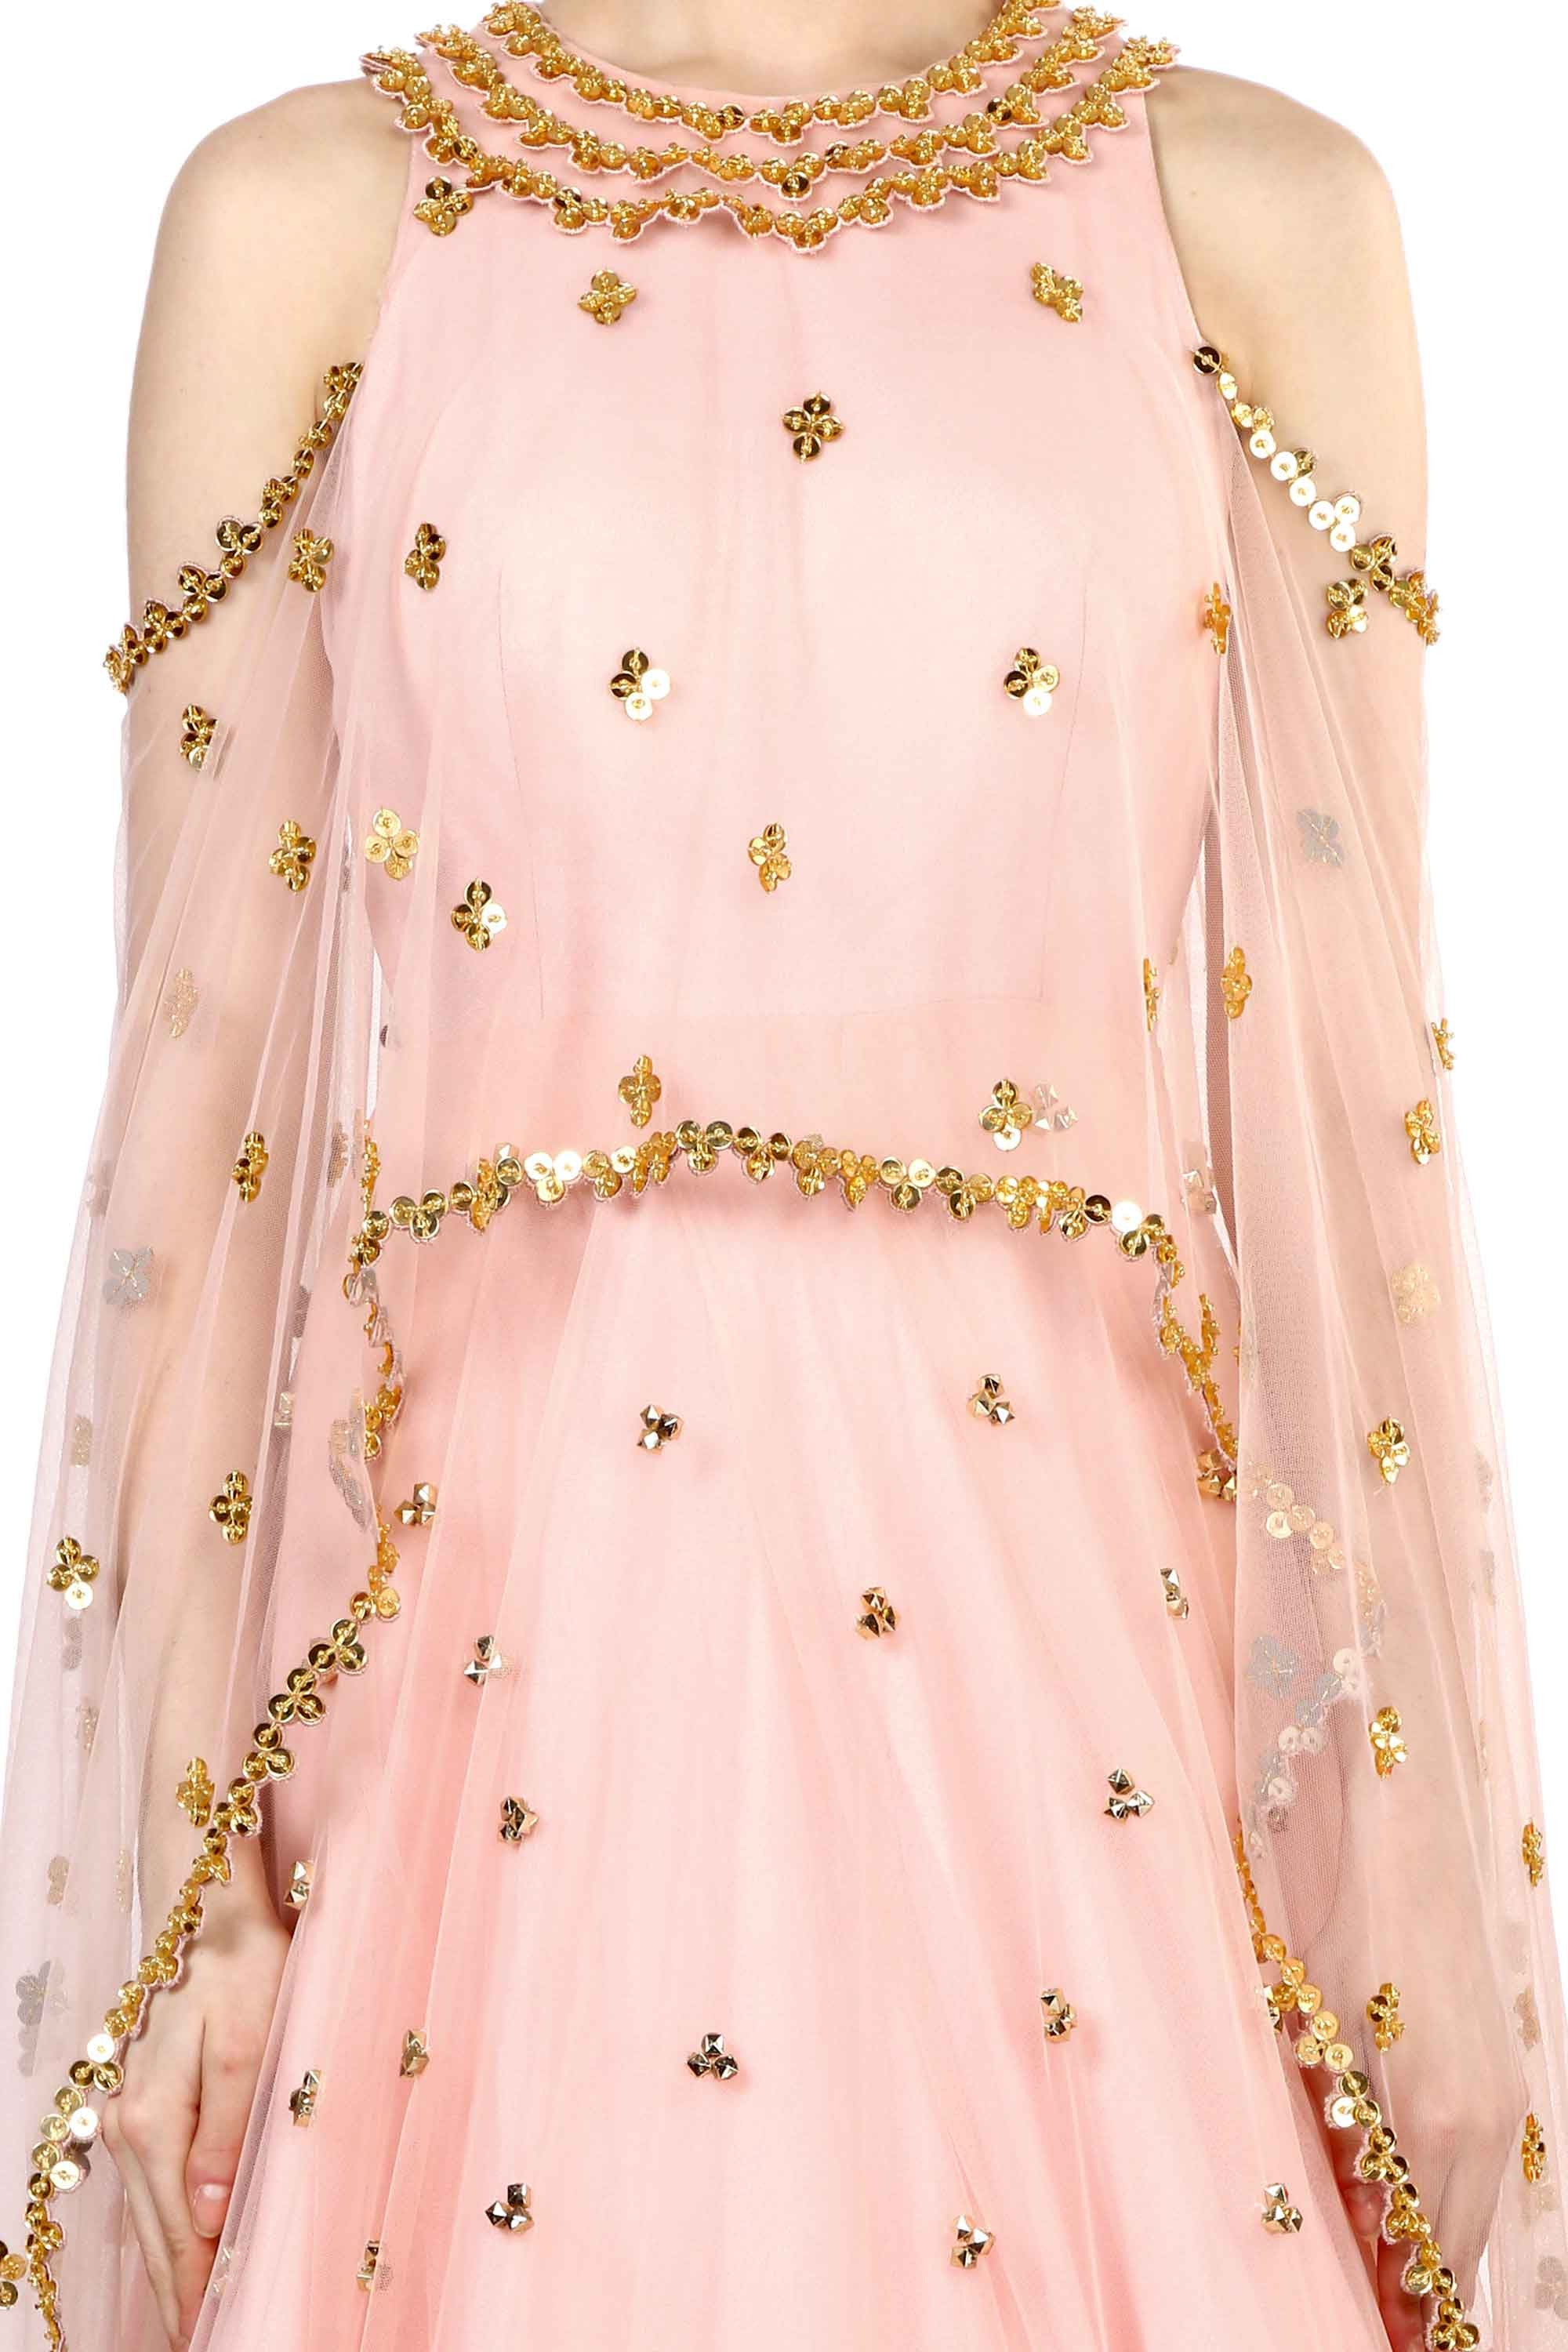 Peach Aztec Embroidered Anarkali Closeup